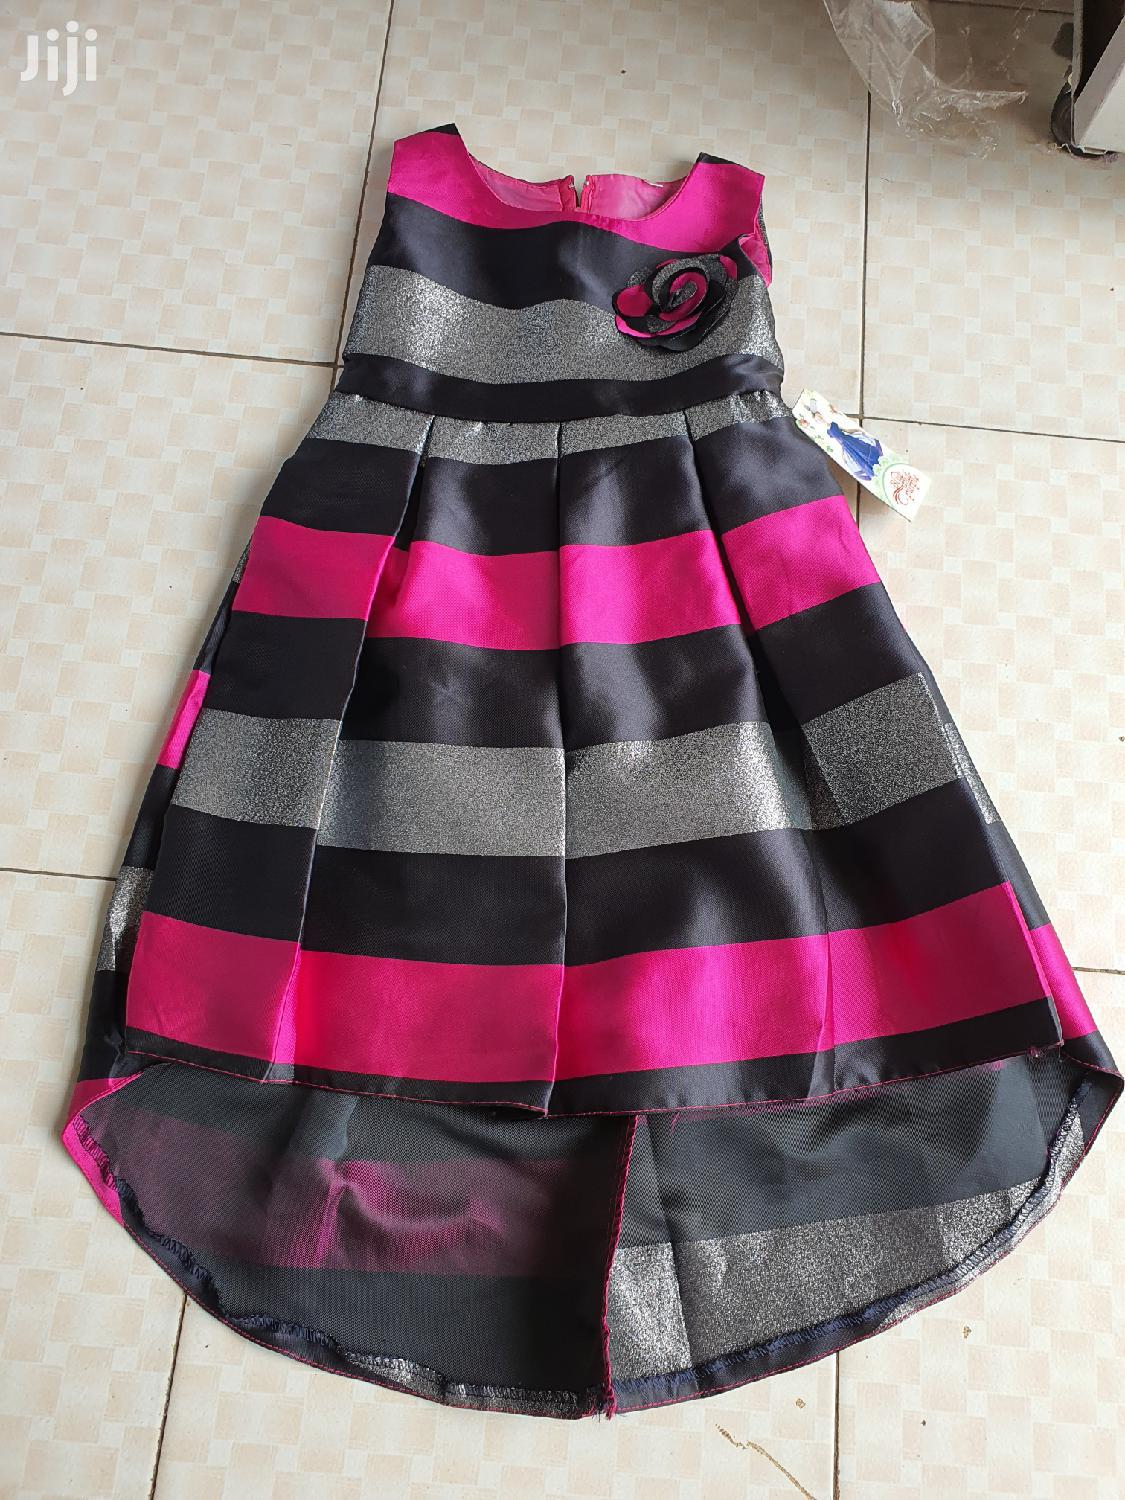 Dress Available